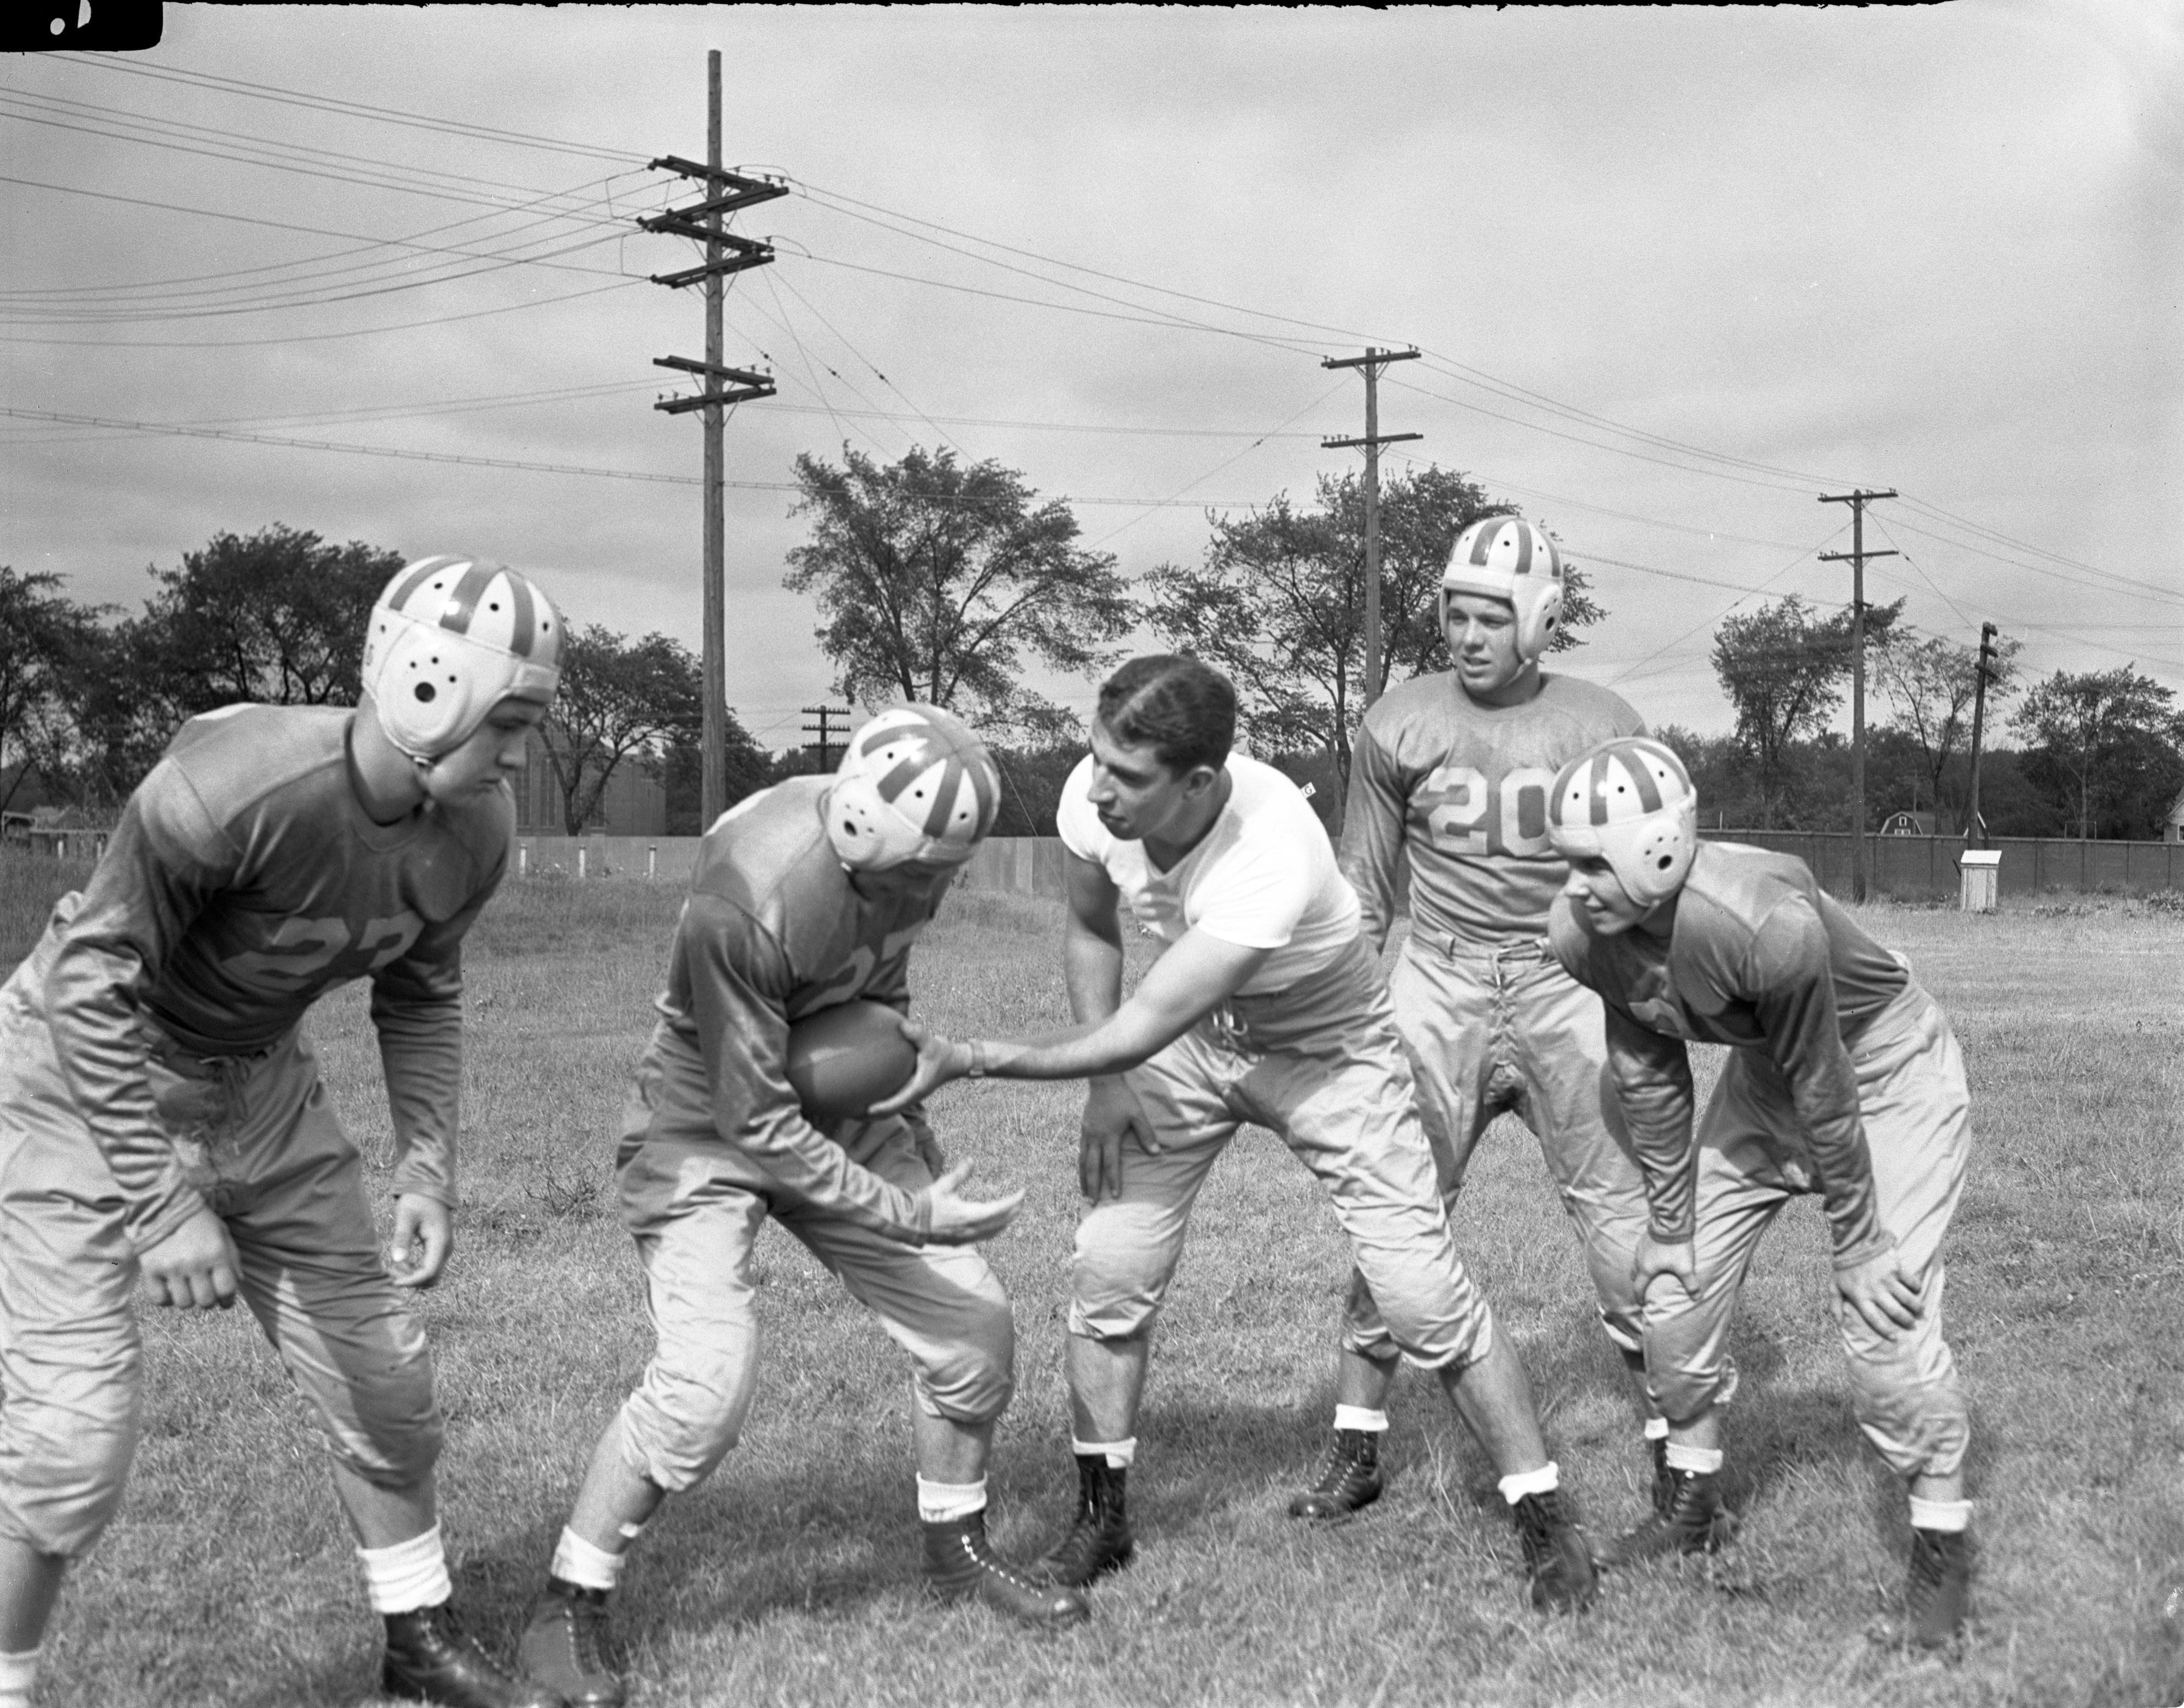 Image from Coach Les Heidamos Explains Ball-Handling At University High School's First Football Practice, August 1945